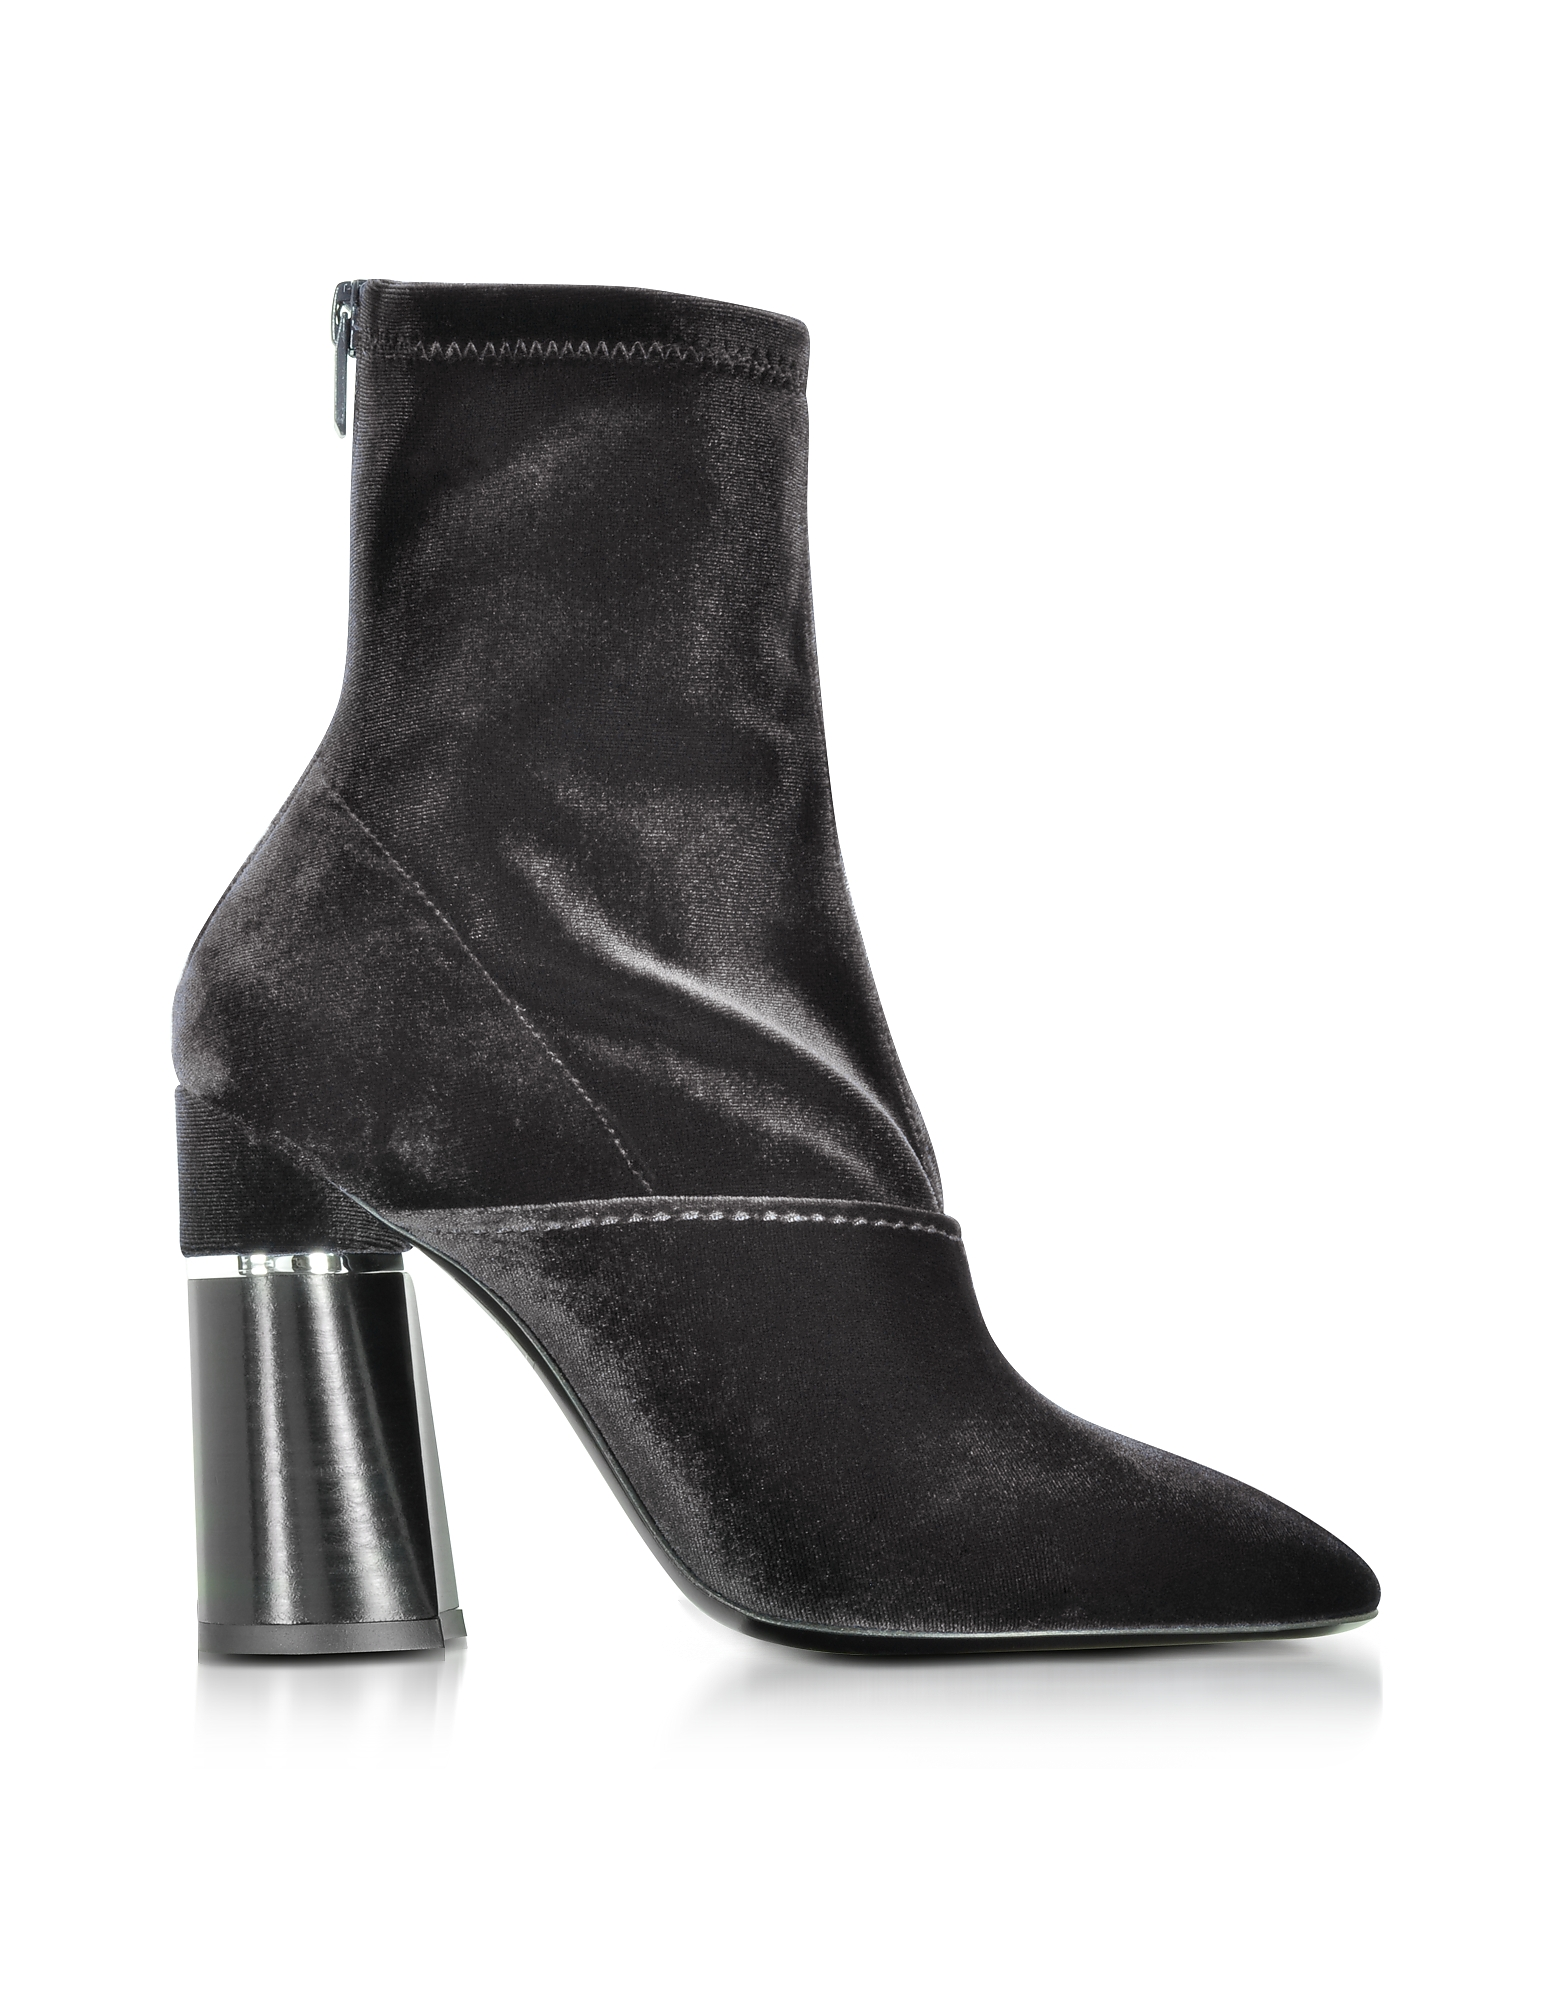 3.1 Phillip Lim Shoes, Kyoto Black Velvet Stretch High Heel Ankle Boots